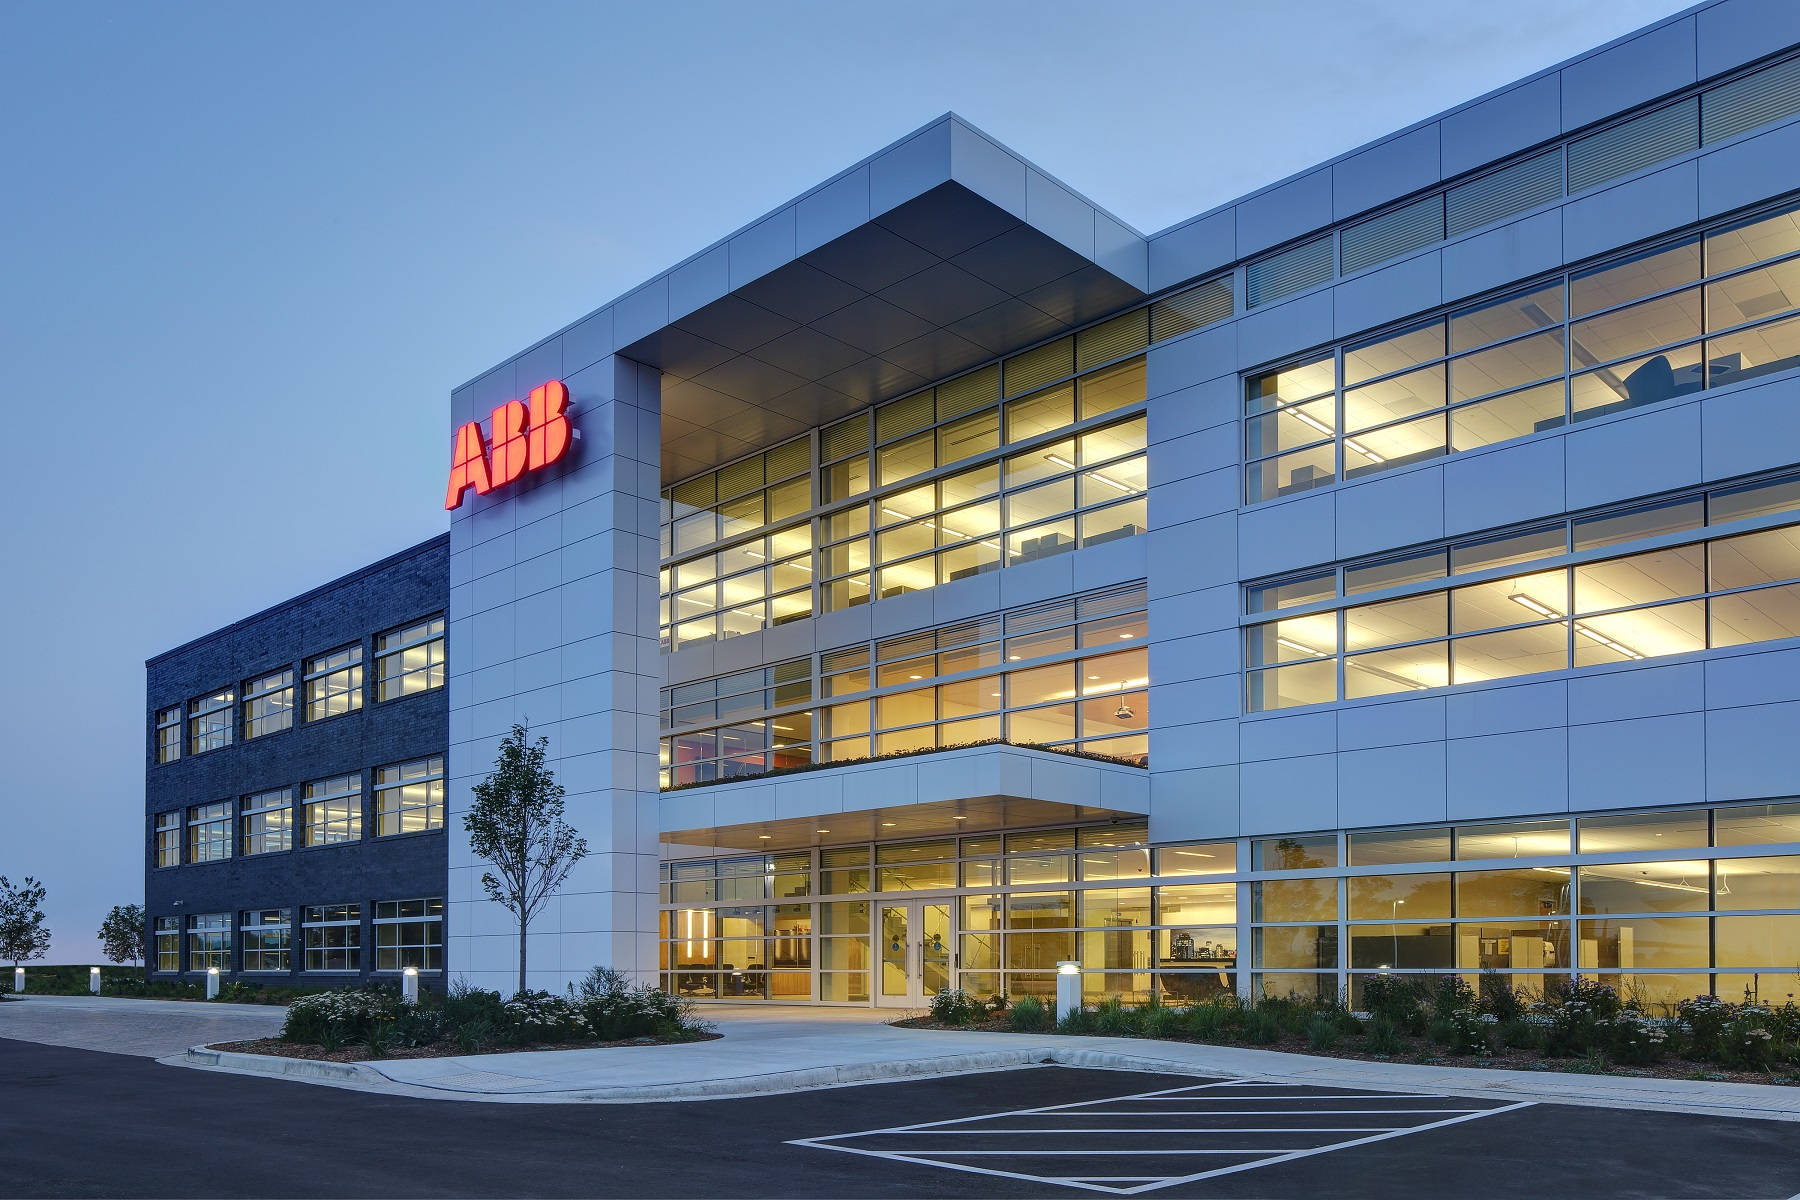 ABB @ Innovation Parkway